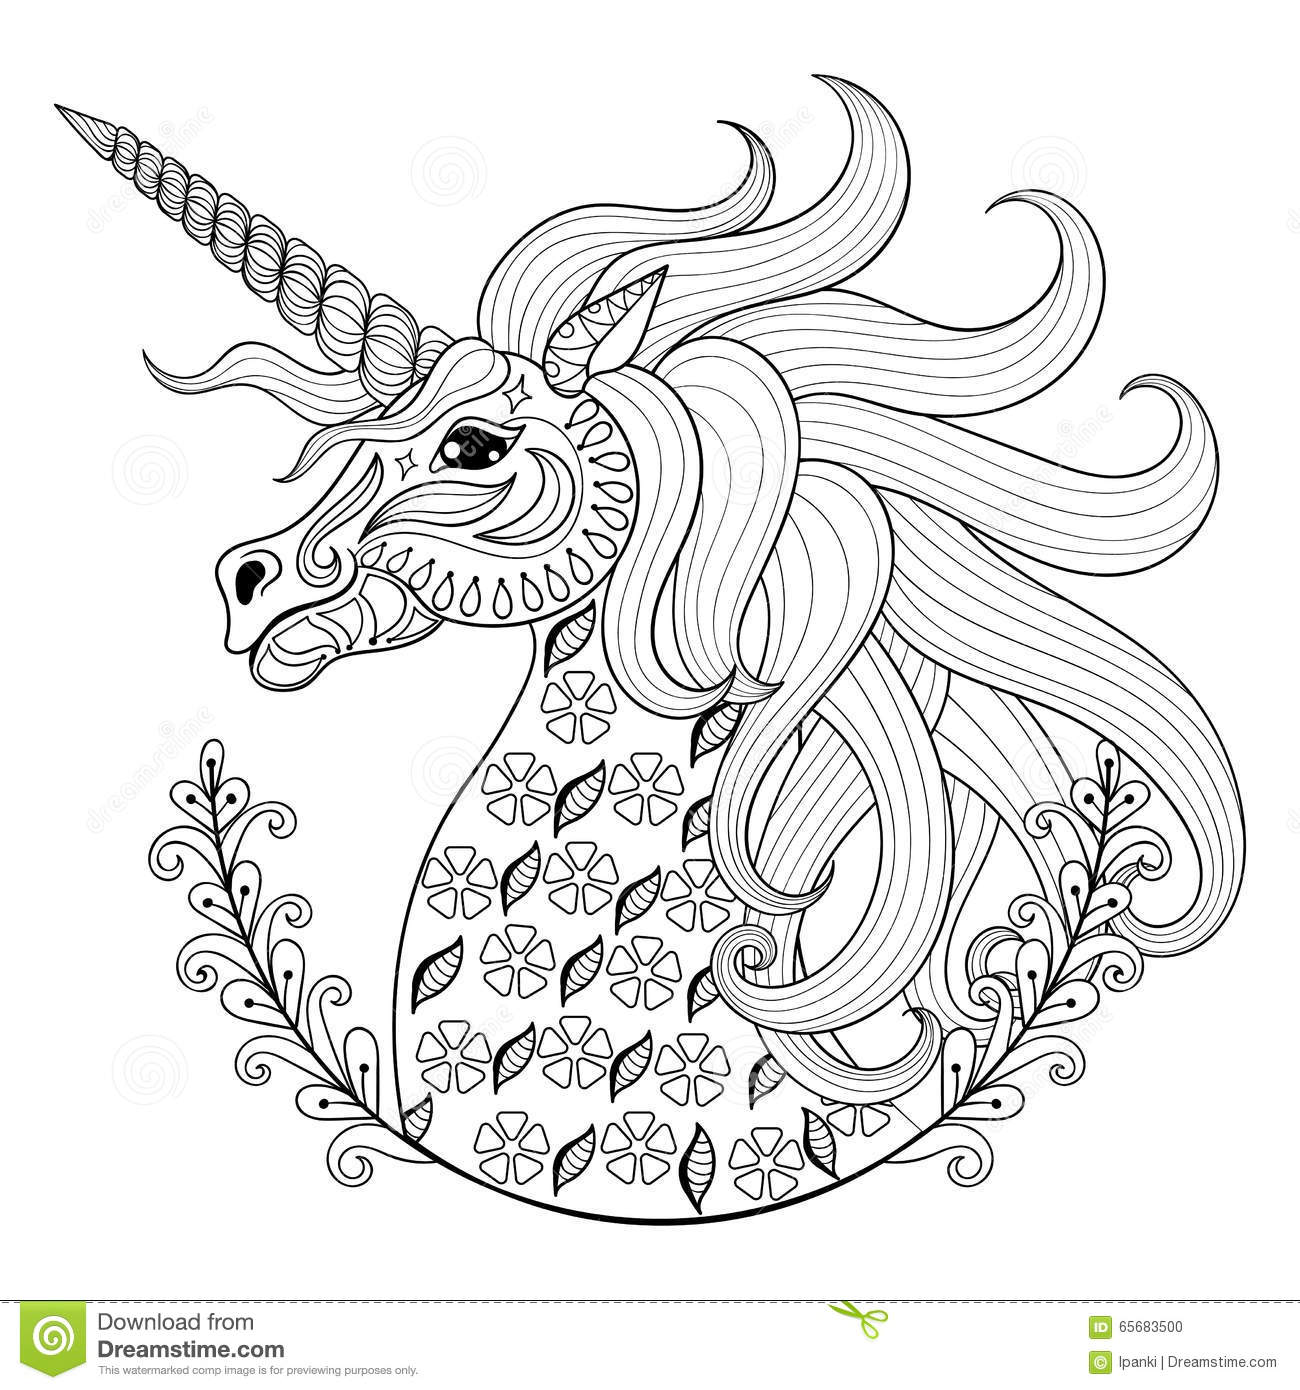 Download Hand Drawing Unicorn For Adult Anti Stress Coloring Pages Stock Vector